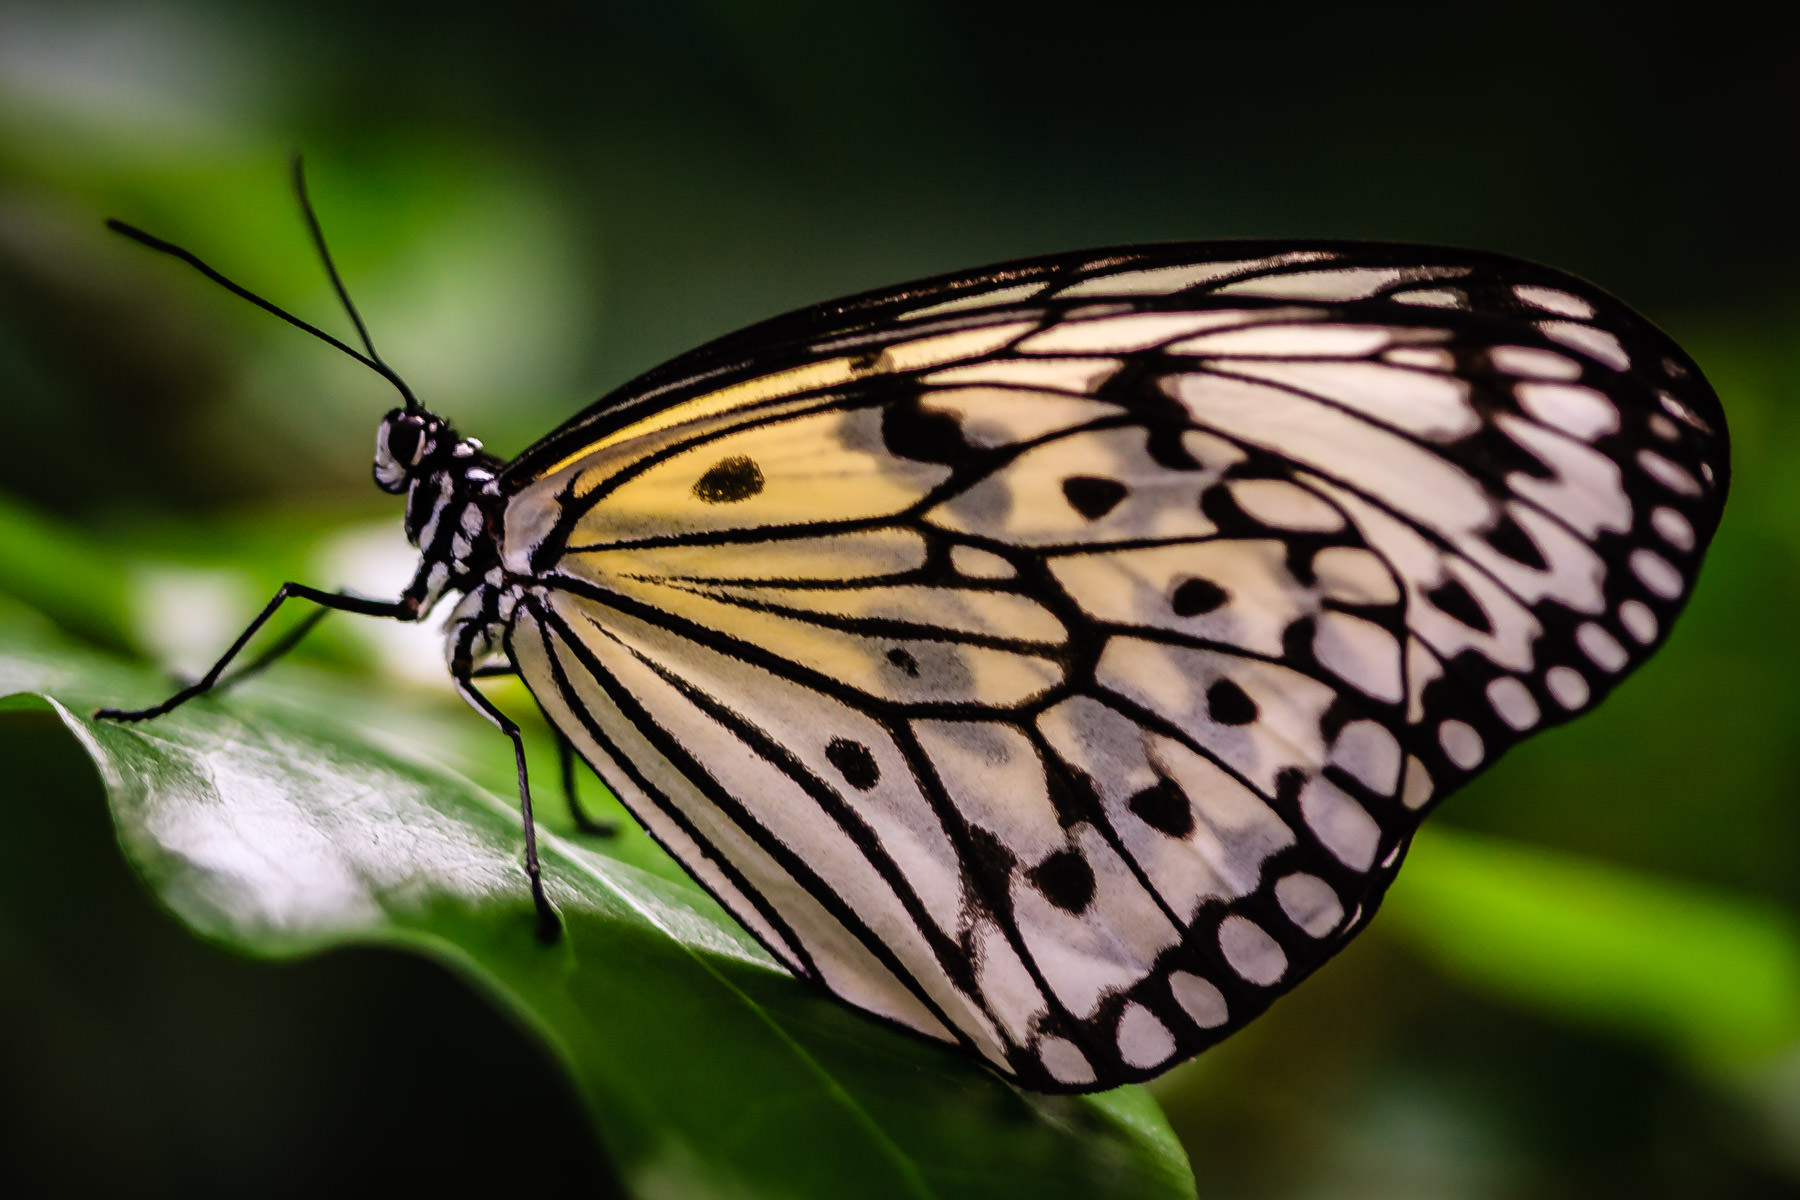 A black and white butterfly at Houston's Cockrell Butterfly Center.